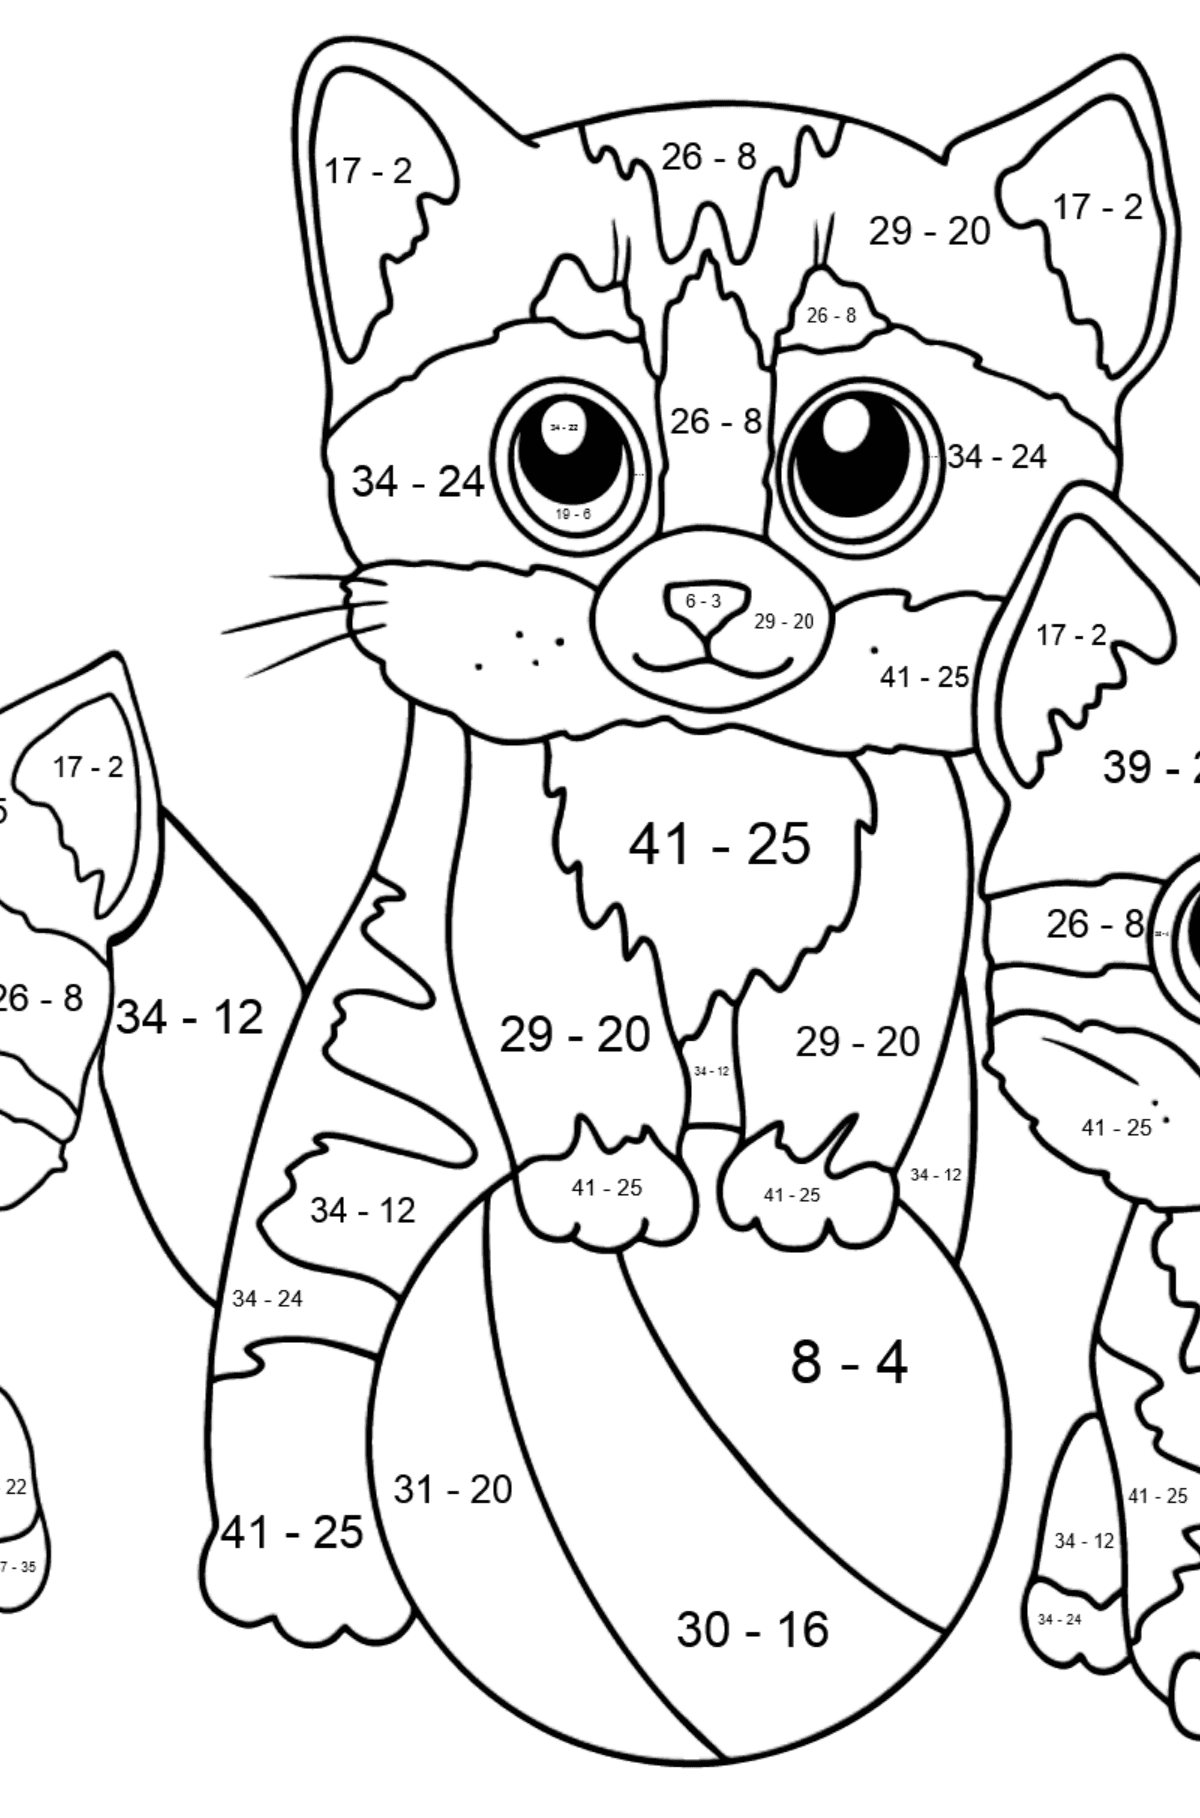 Coloring Page - Three Kittens are Playing Together with a Ball  - Math Coloring - Subtraction for Kids